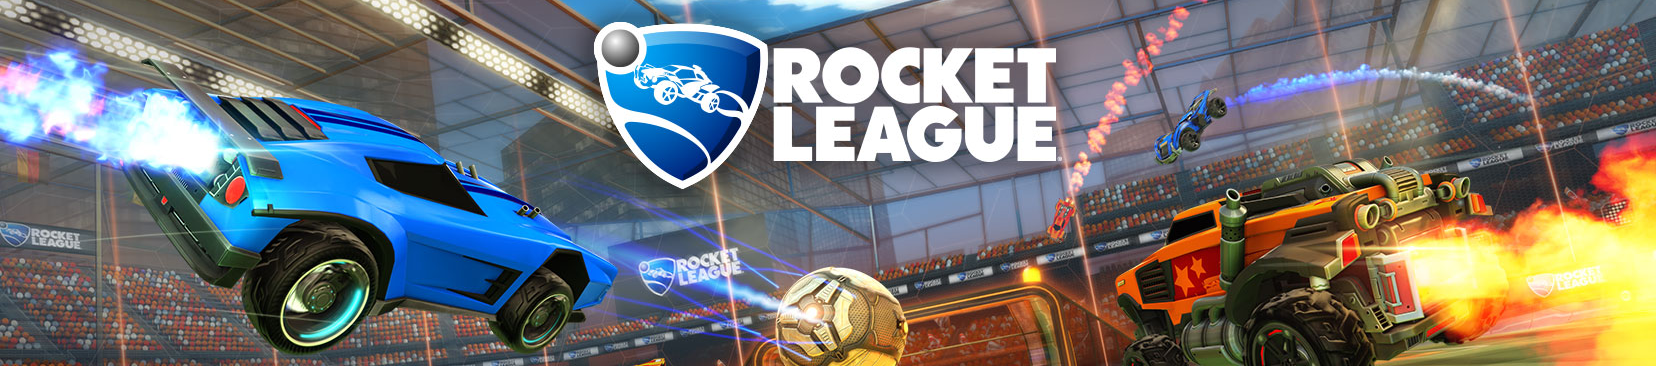 Rocket_League_banner.png#asset:388